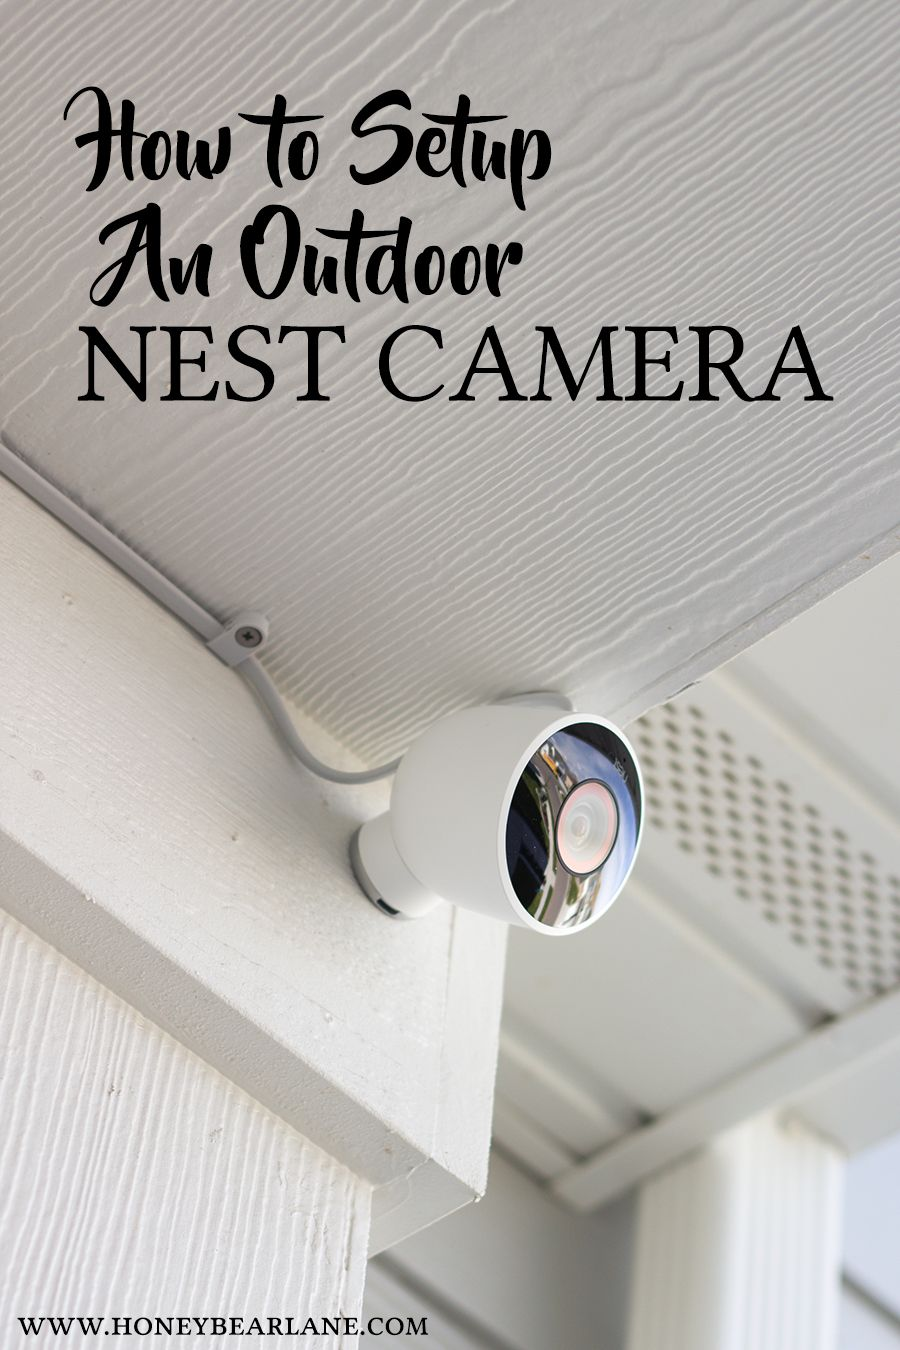 smart home series how to setup an outdoor nest camera pinterest rh pinterest co uk Nest Thermostat Wiring Diagram Nest 2 Stage Heating Wiring